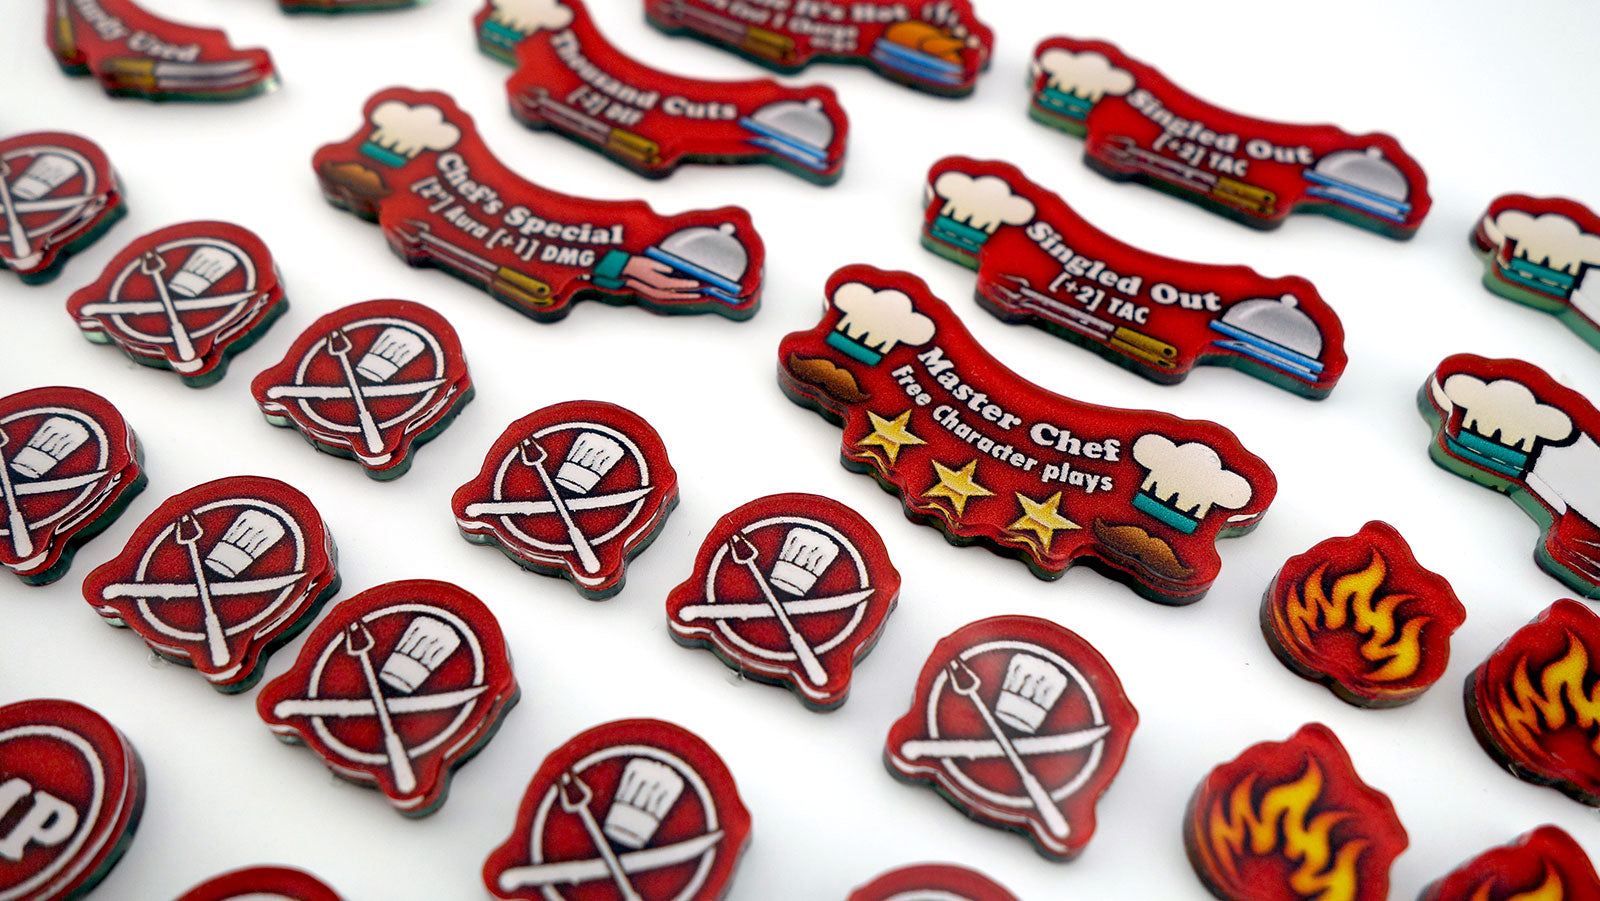 Cook's Hell's Kitchen Season 4 Token set